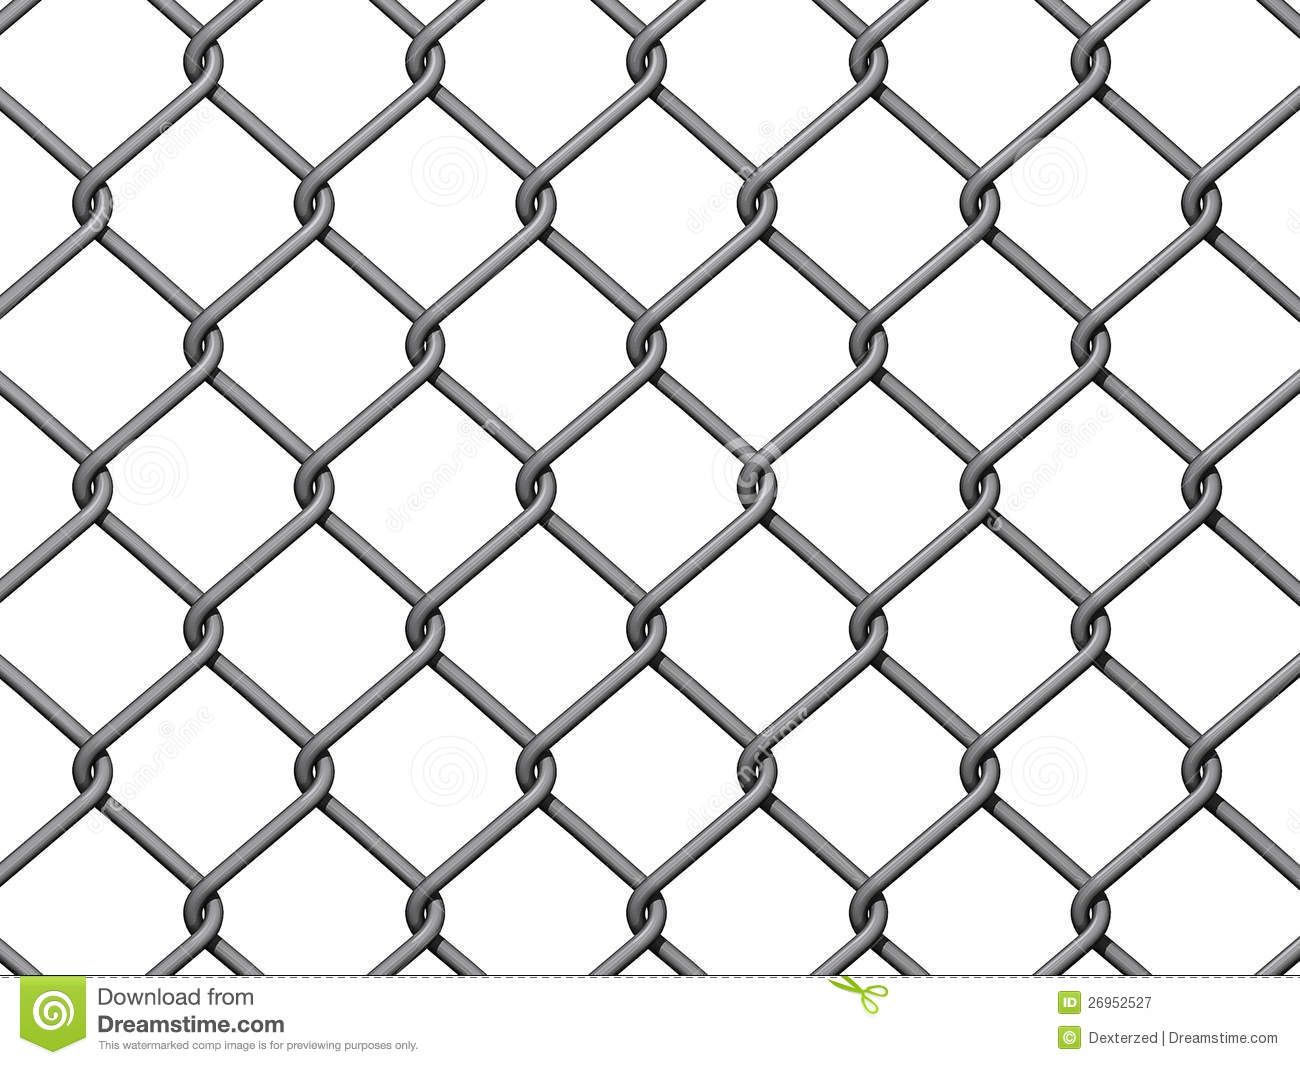 chain-link-fence-background-26952527.jpg (1300×1065) | Forest + More ...